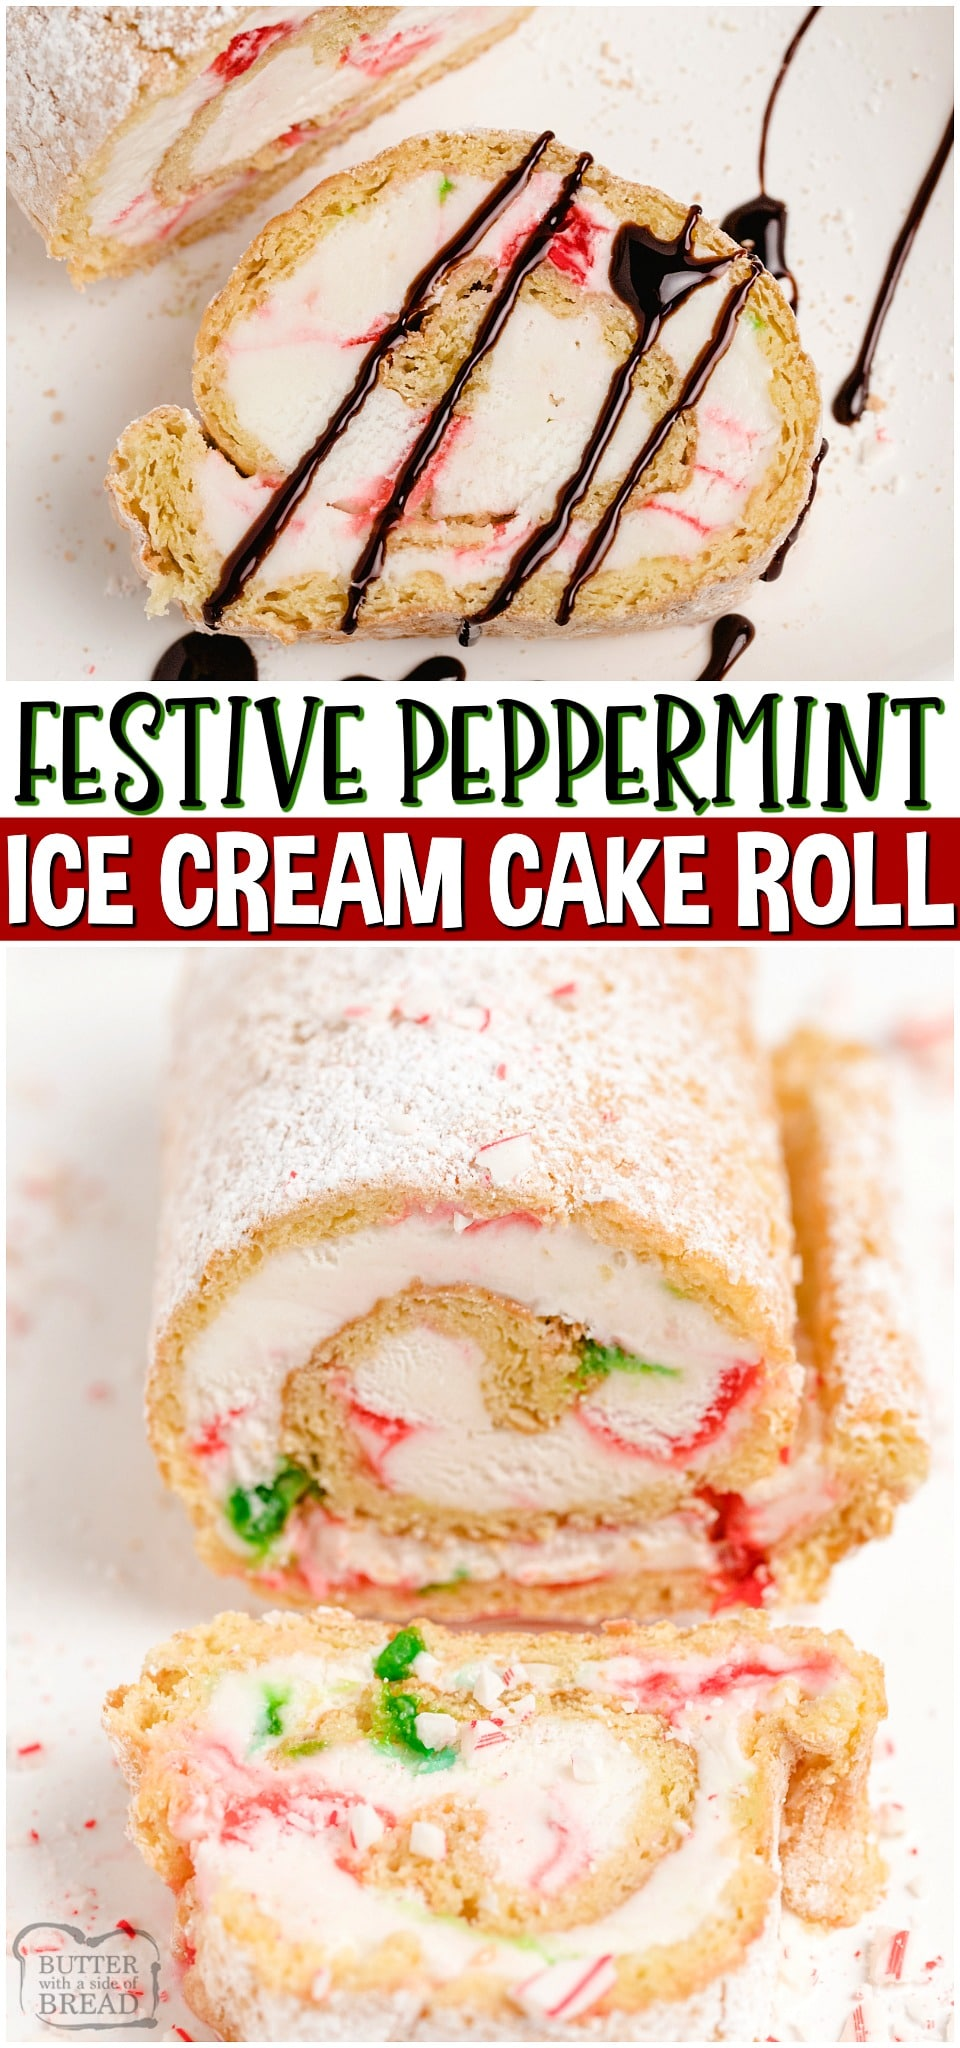 Holiday Peppermint Ice Cream Cake Roll is festive, show stopping dessert that's perfect for your Christmas table! Cake Roll recipe made with peppermint Ice Cream rolled in sweet, soft vanilla cake, sliced & topped with chocolate drizzle. #peppermint #icecream #Christmas #cake #cakeroll #baking #easyrecipe from BUTTER WITH A SIDE OF BREAD